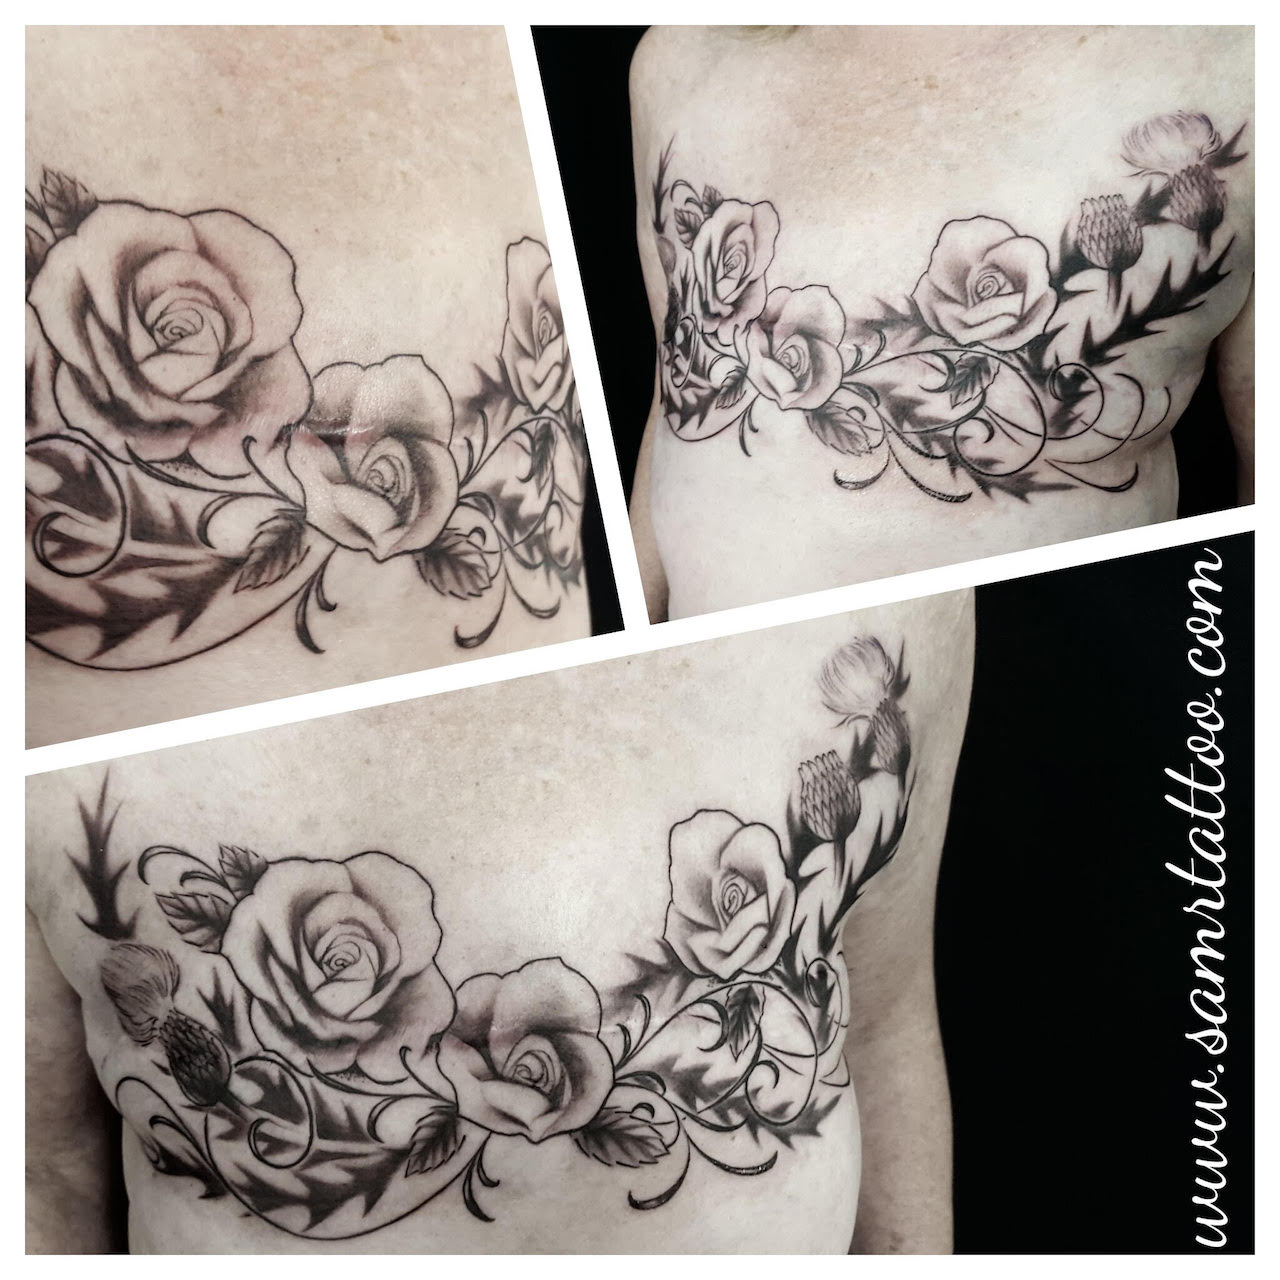 three different photos show various details of a black and grey tattoo on a woman's chest area covering mastectomy scars